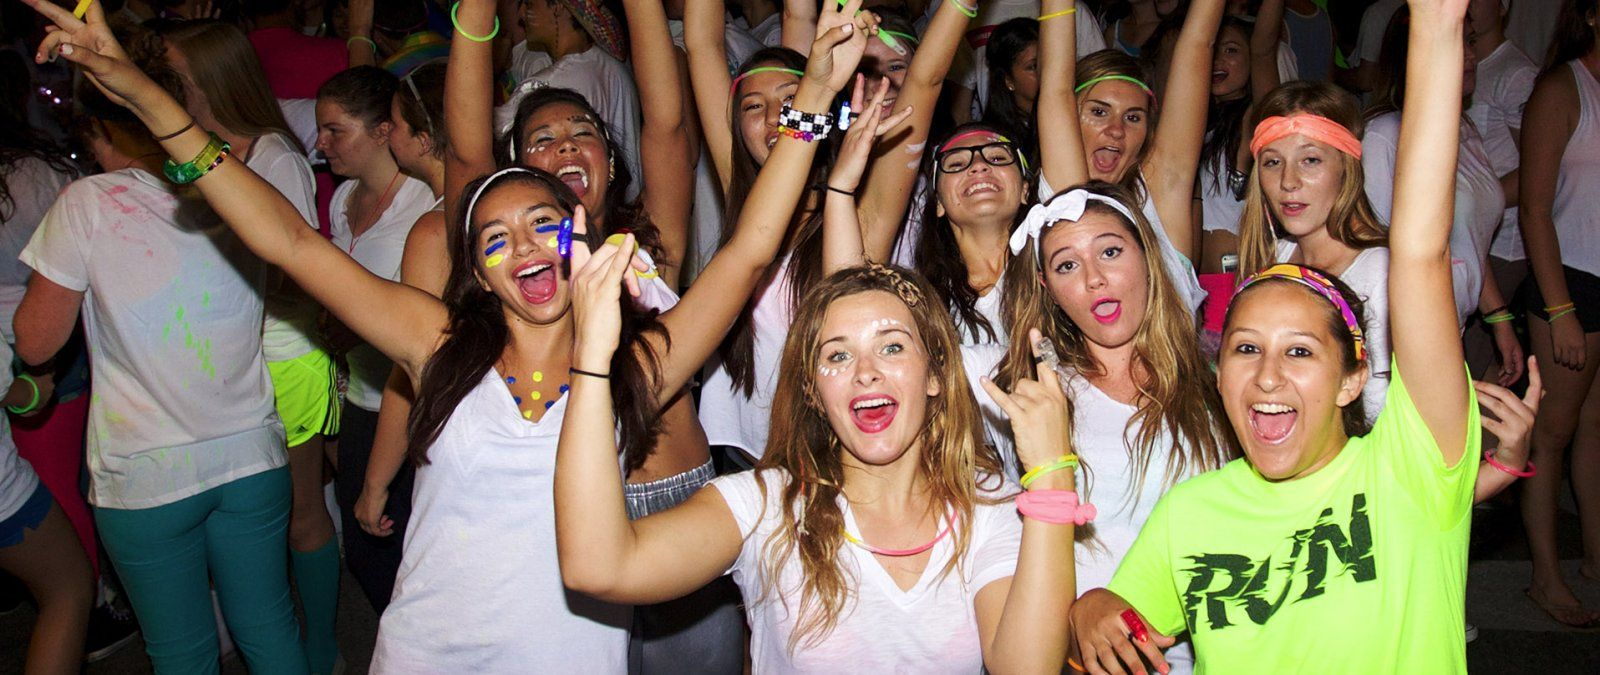 PLNU Students Show Their Excitement at Glow with the Flow